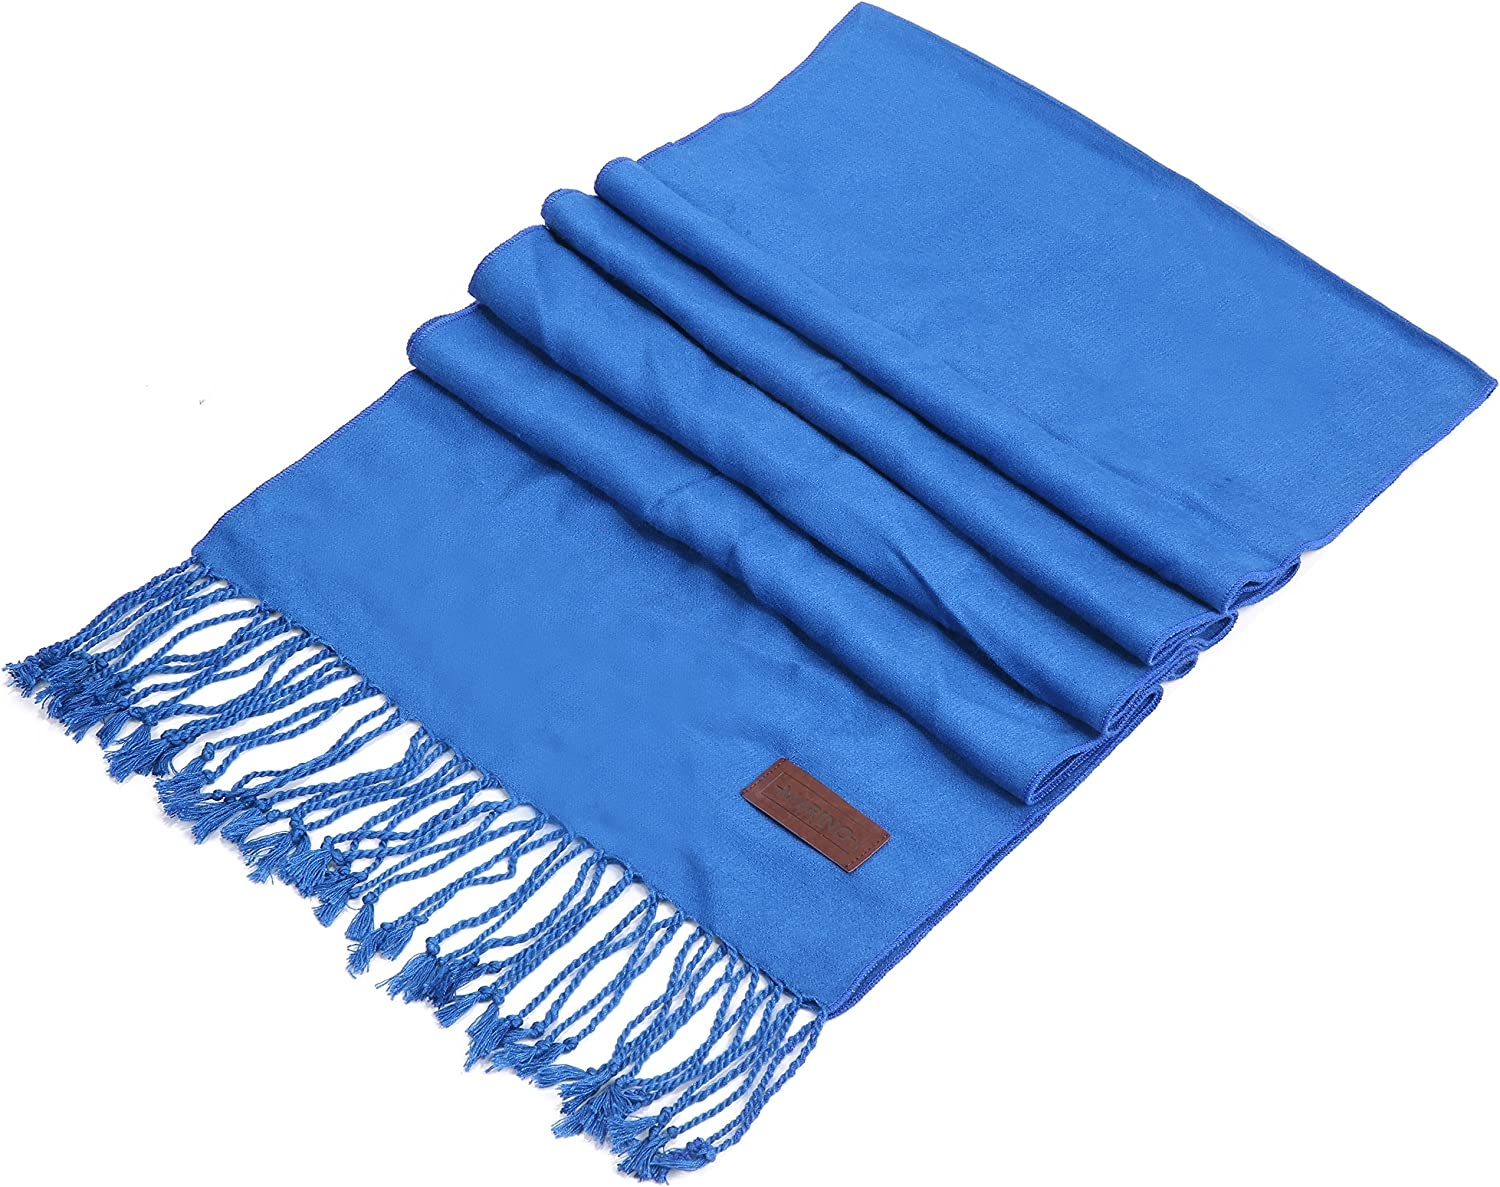 Mio Marino Cashmere Feel Winter Scarf, 100% Soft Cotton Cozy and Itch Free Scarves